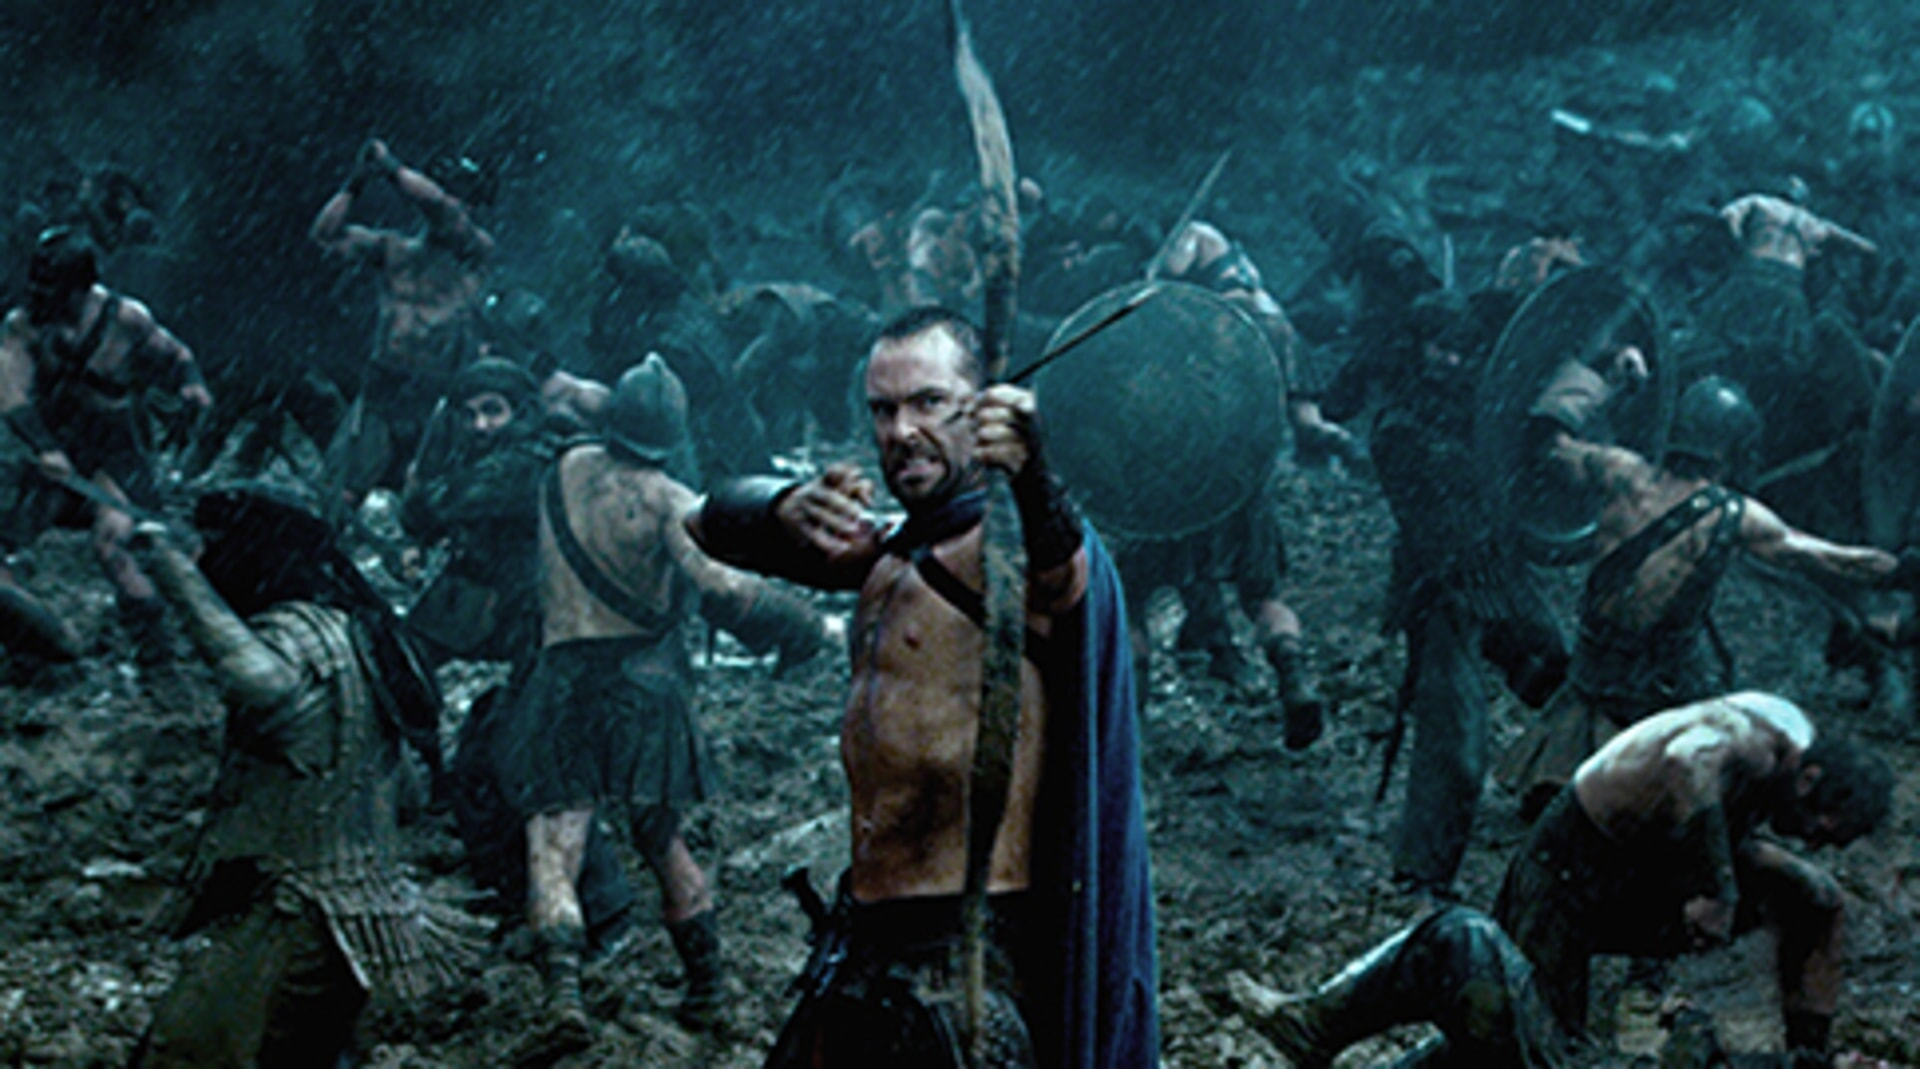 300: Rise of an Empire - Image 8